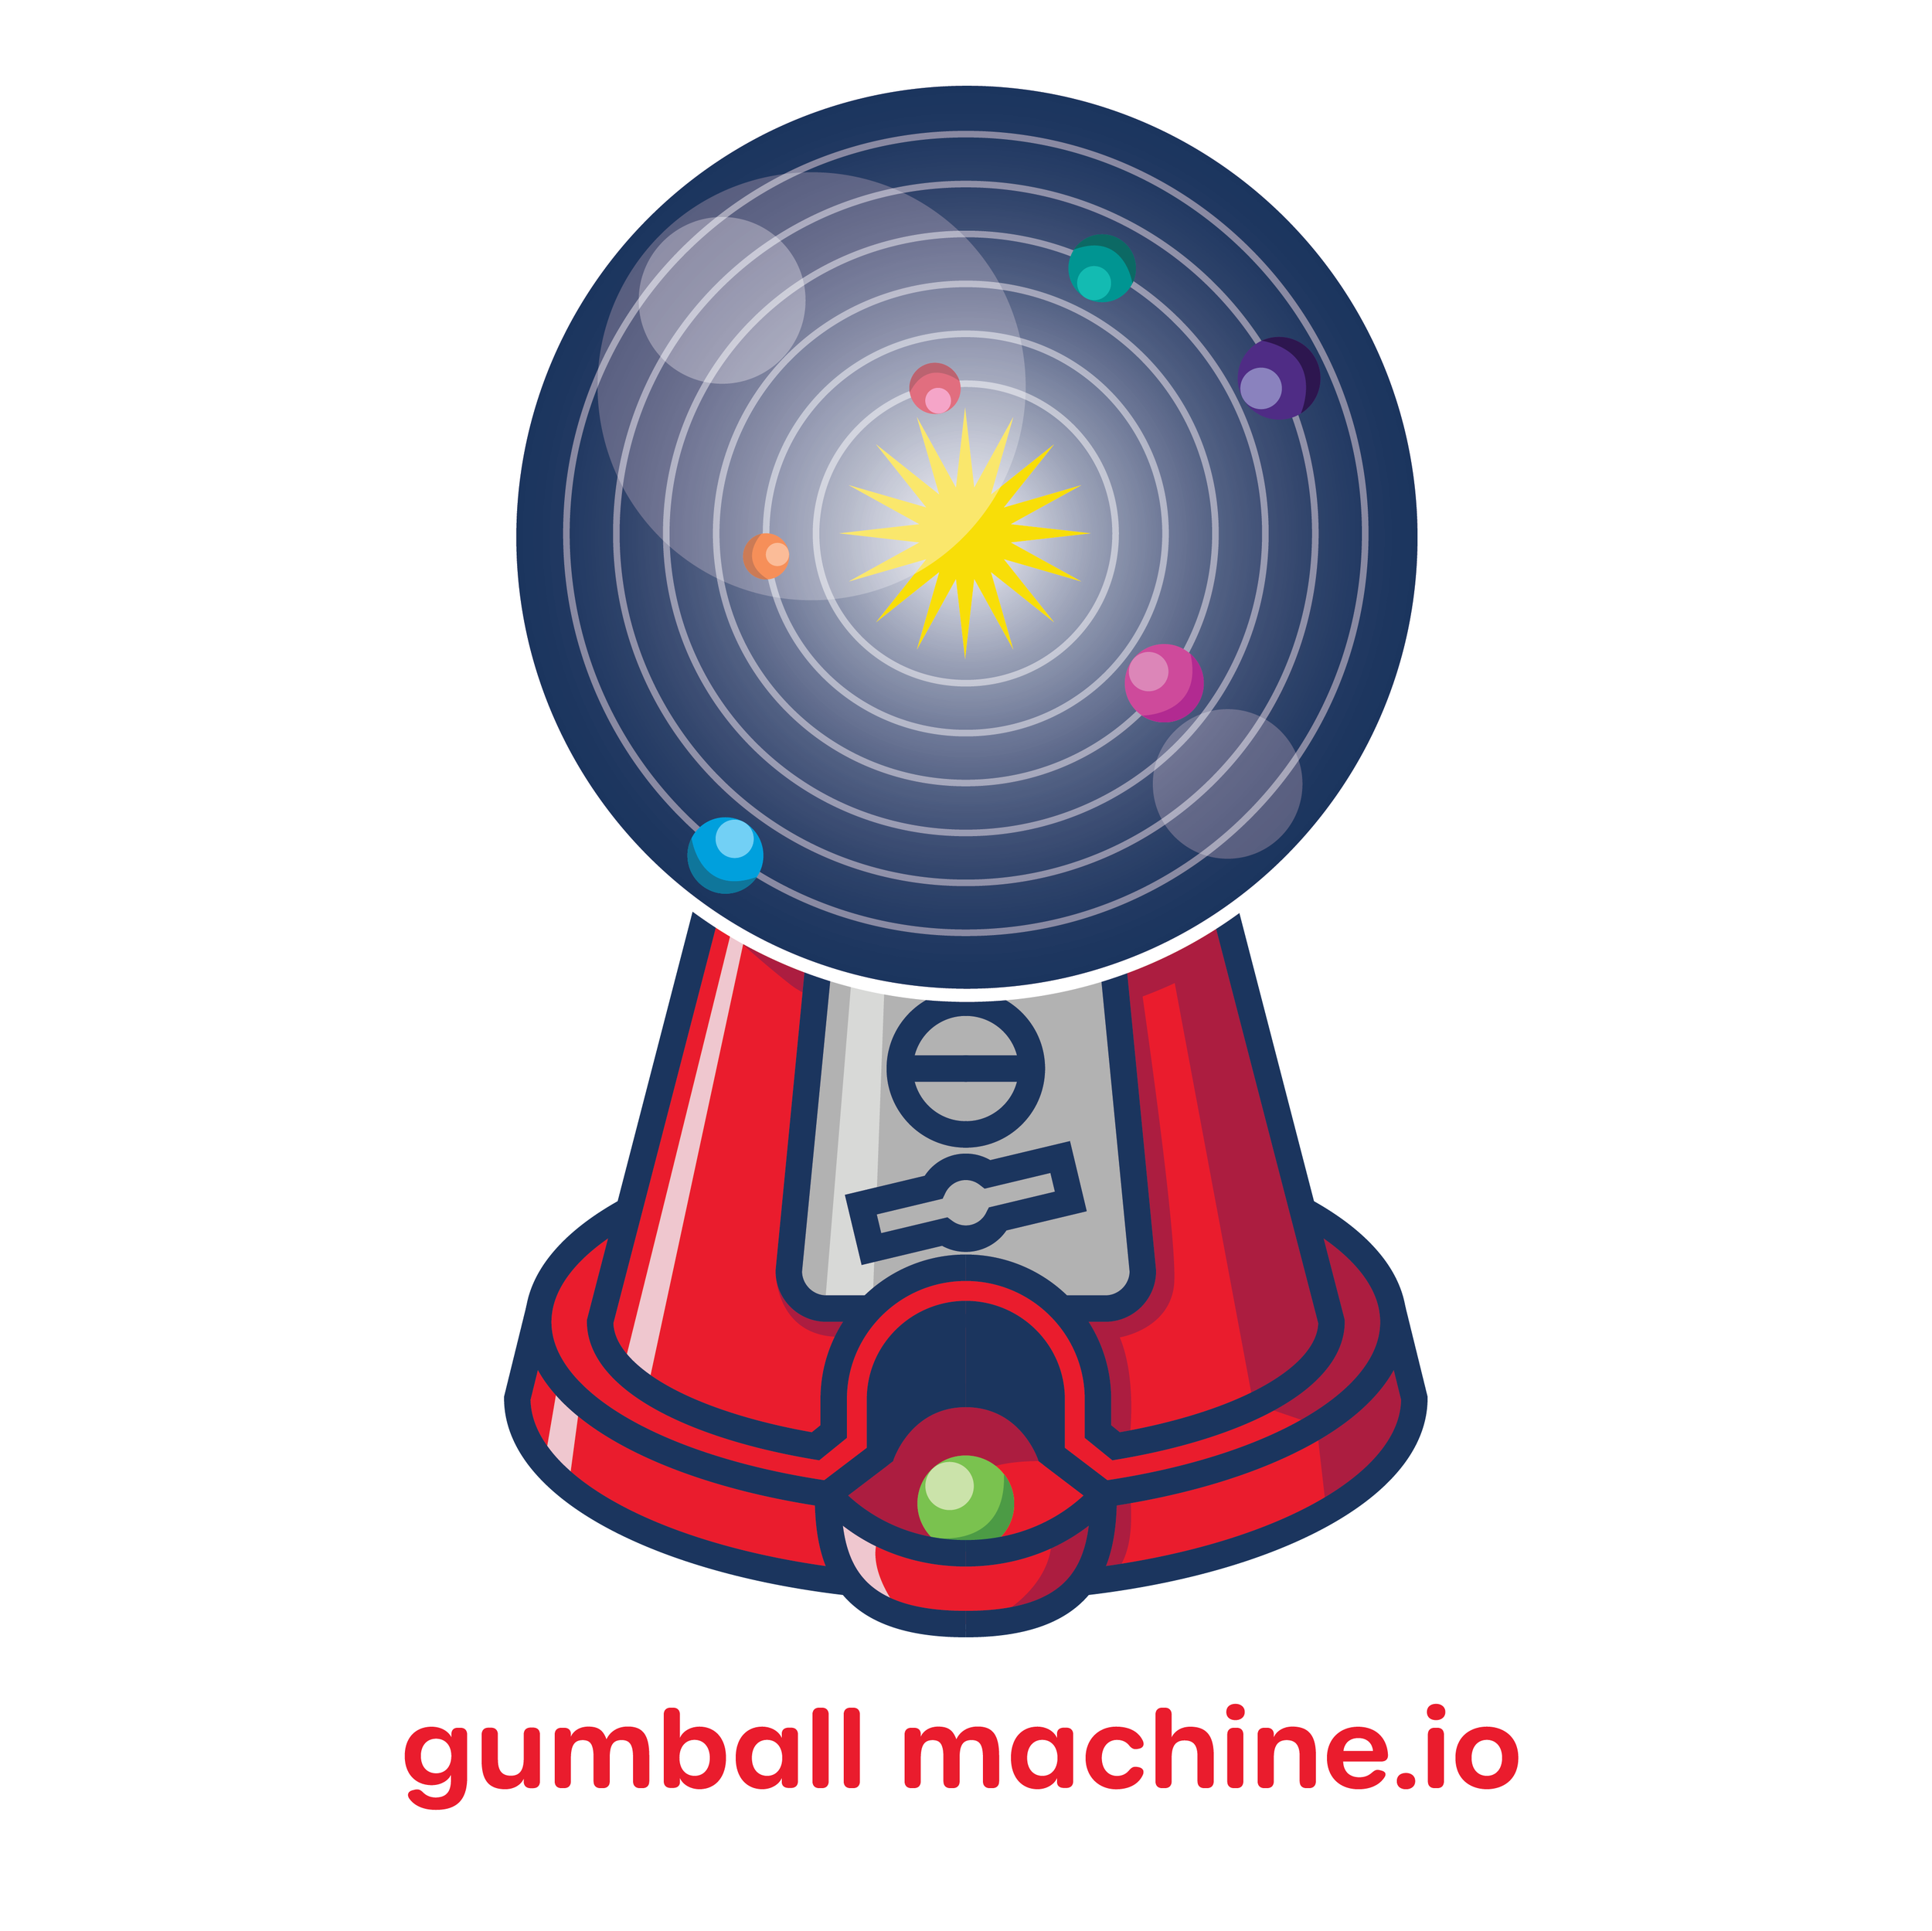 gumball_machine-01.png